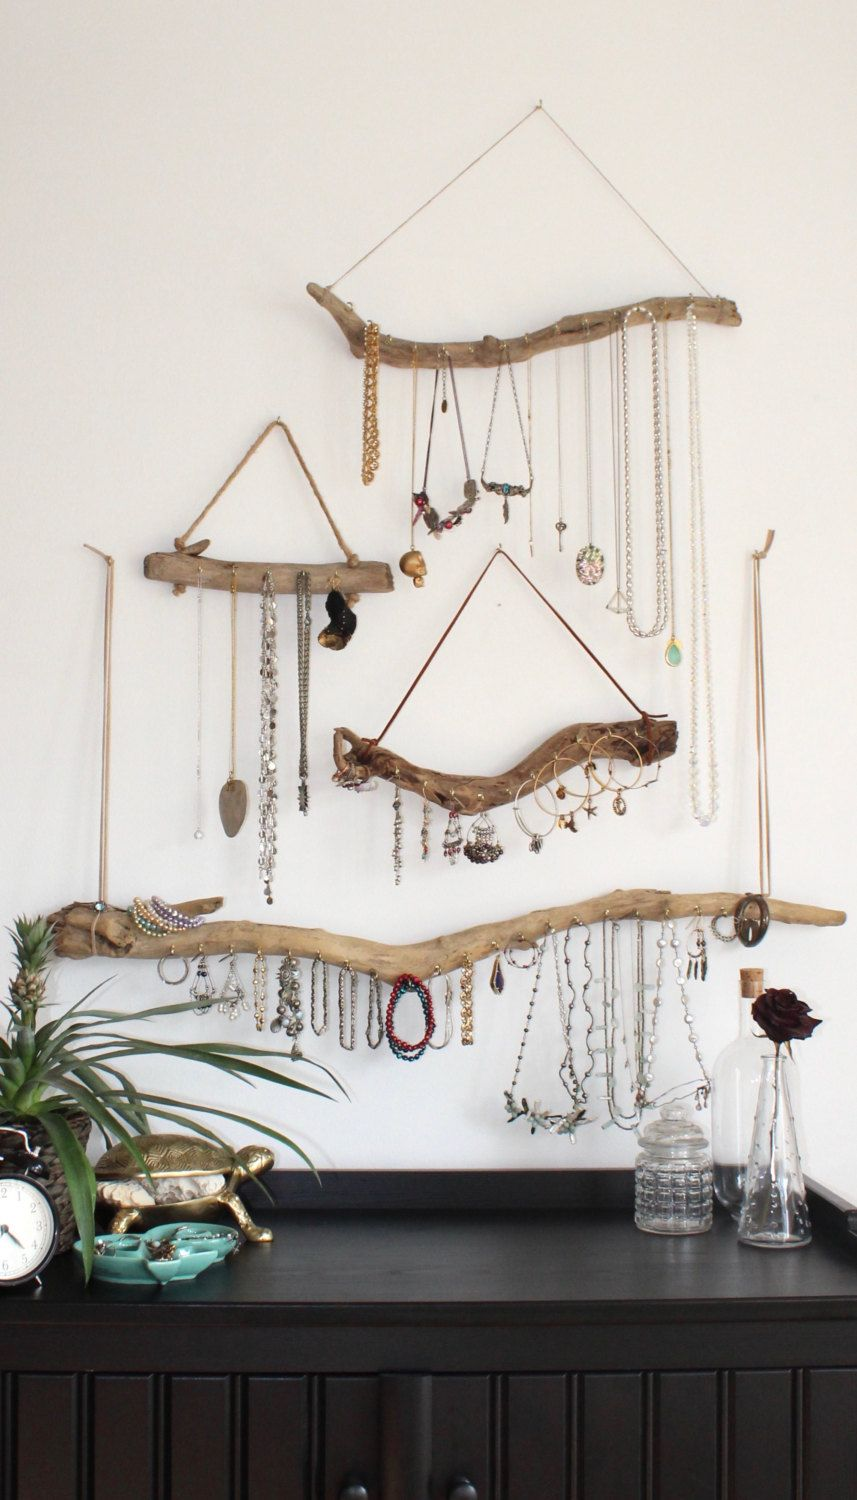 Driftwood Jewelry Organizer - Made to Order Jewelry Hangers - Pick the Driftwood - Boho Decor Storage Jewelry Holder Hanging Jewelry Display #bohobedroom